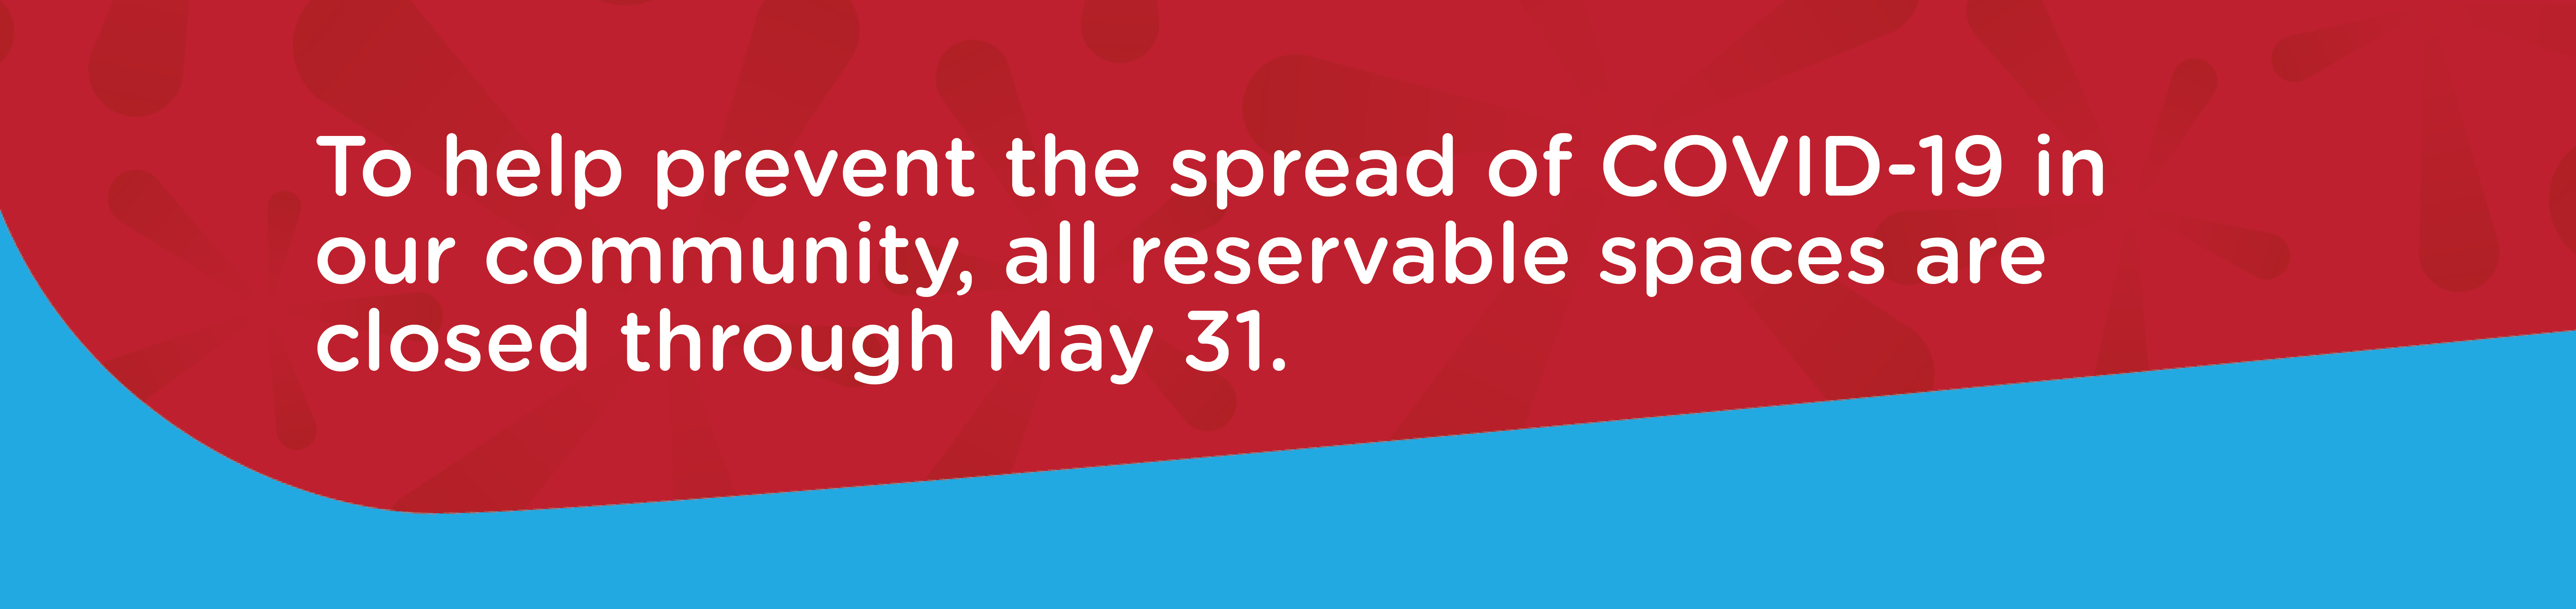 To help prevent the spread of COVID-19 in our community, all reservable spaces are closed through May 31.